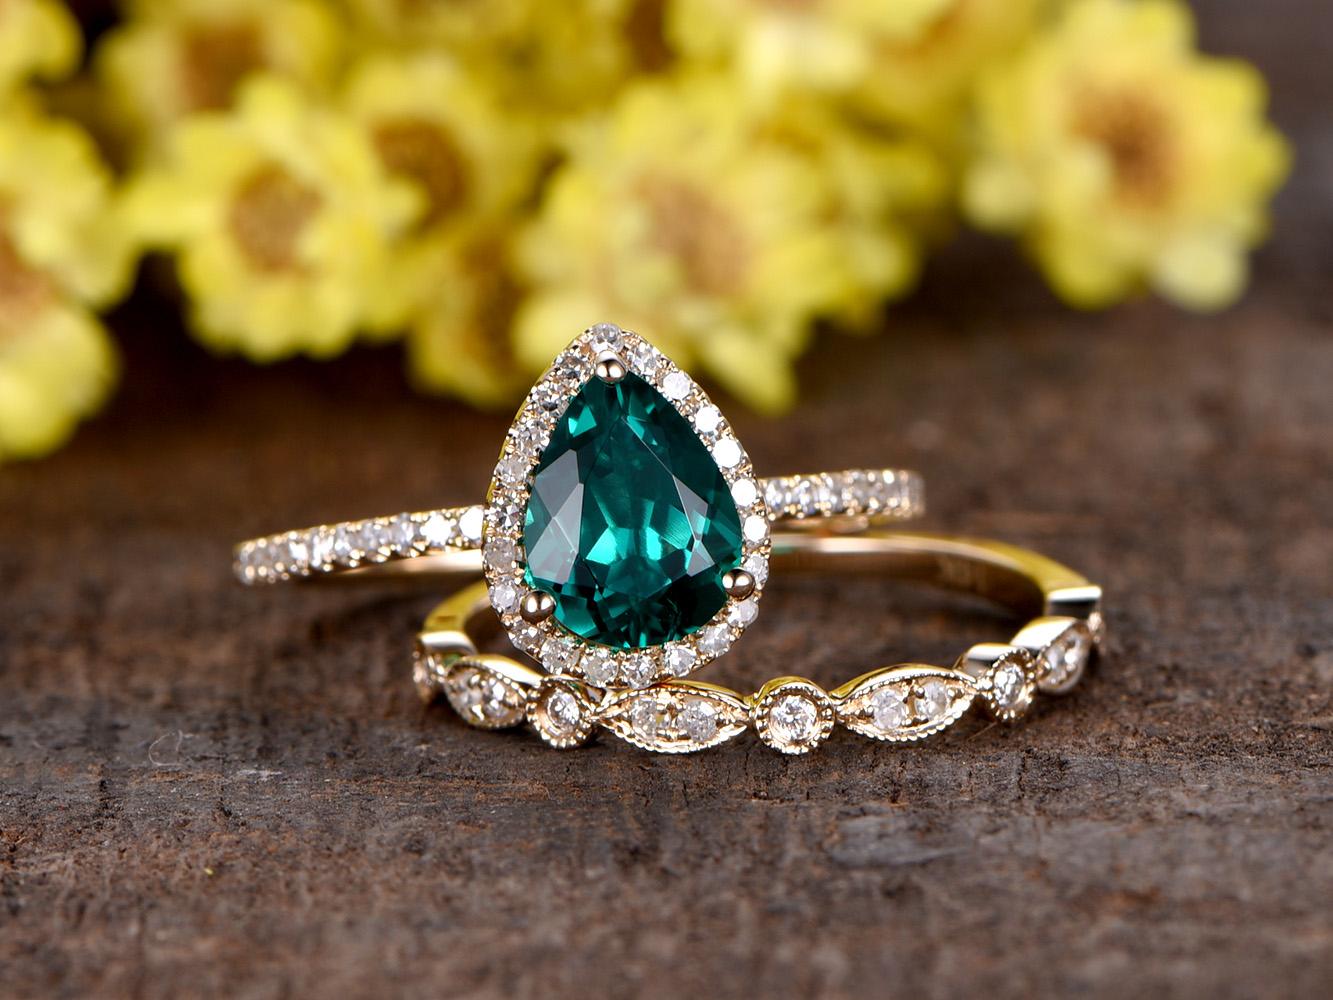 2017 Most Popular Colored Gemstone Engagement Rings Bbbgem